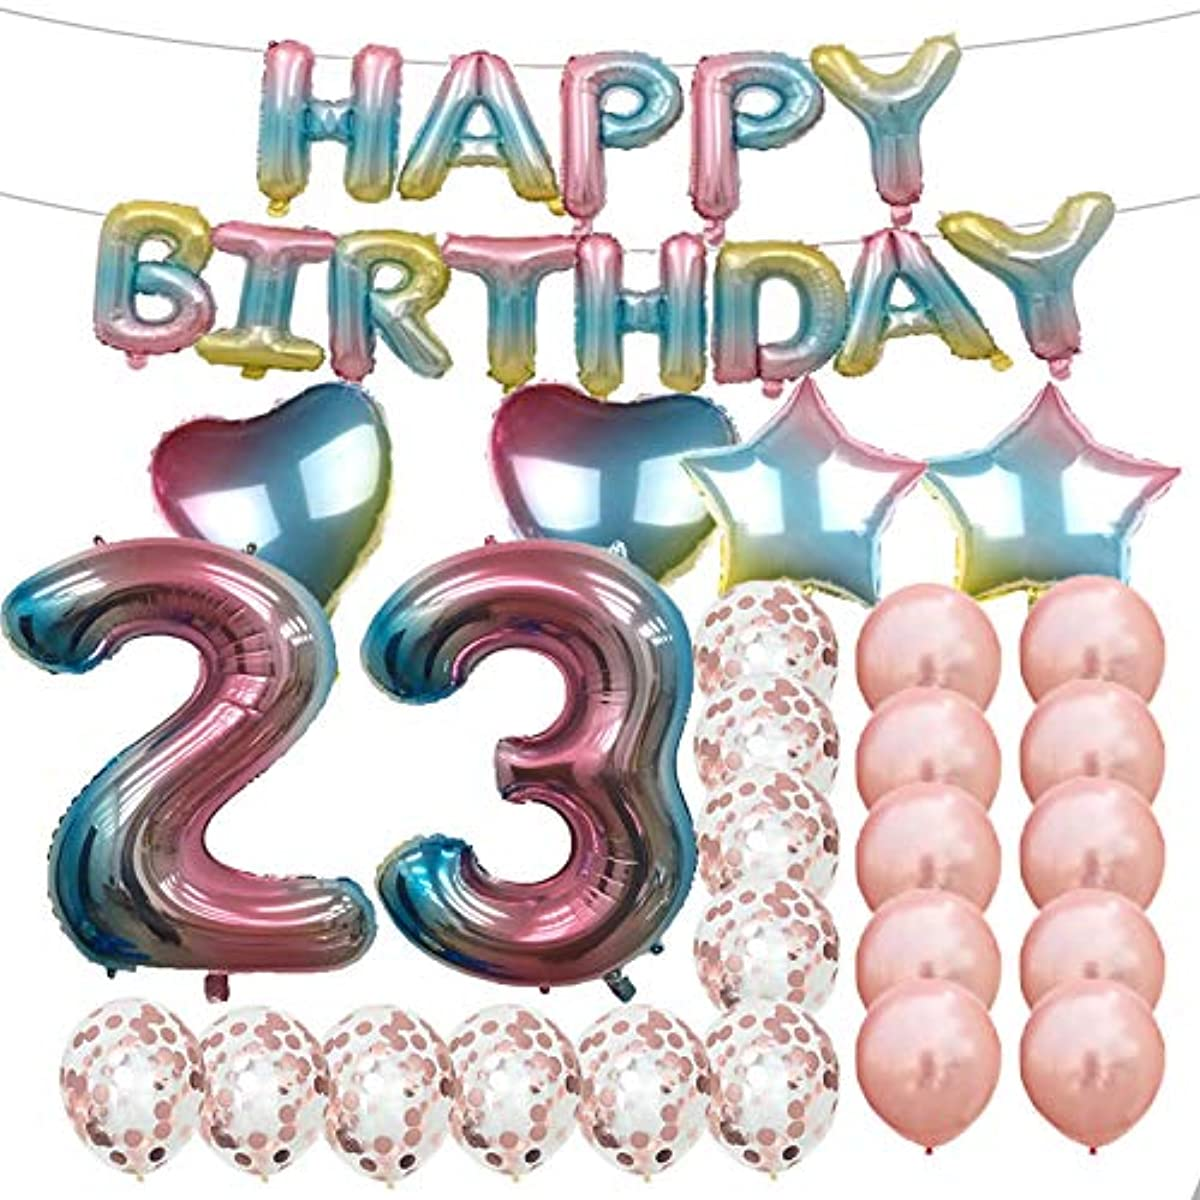 Sweet 23th Birthday Decorations Party Supplies,Rainbow Number 23 Balloons,23th Foil Mylar Balloons Rose Gold Latex Balloon Decoration,Great 23th Birthday Gifts for Girls,Women,Men,Photo Props